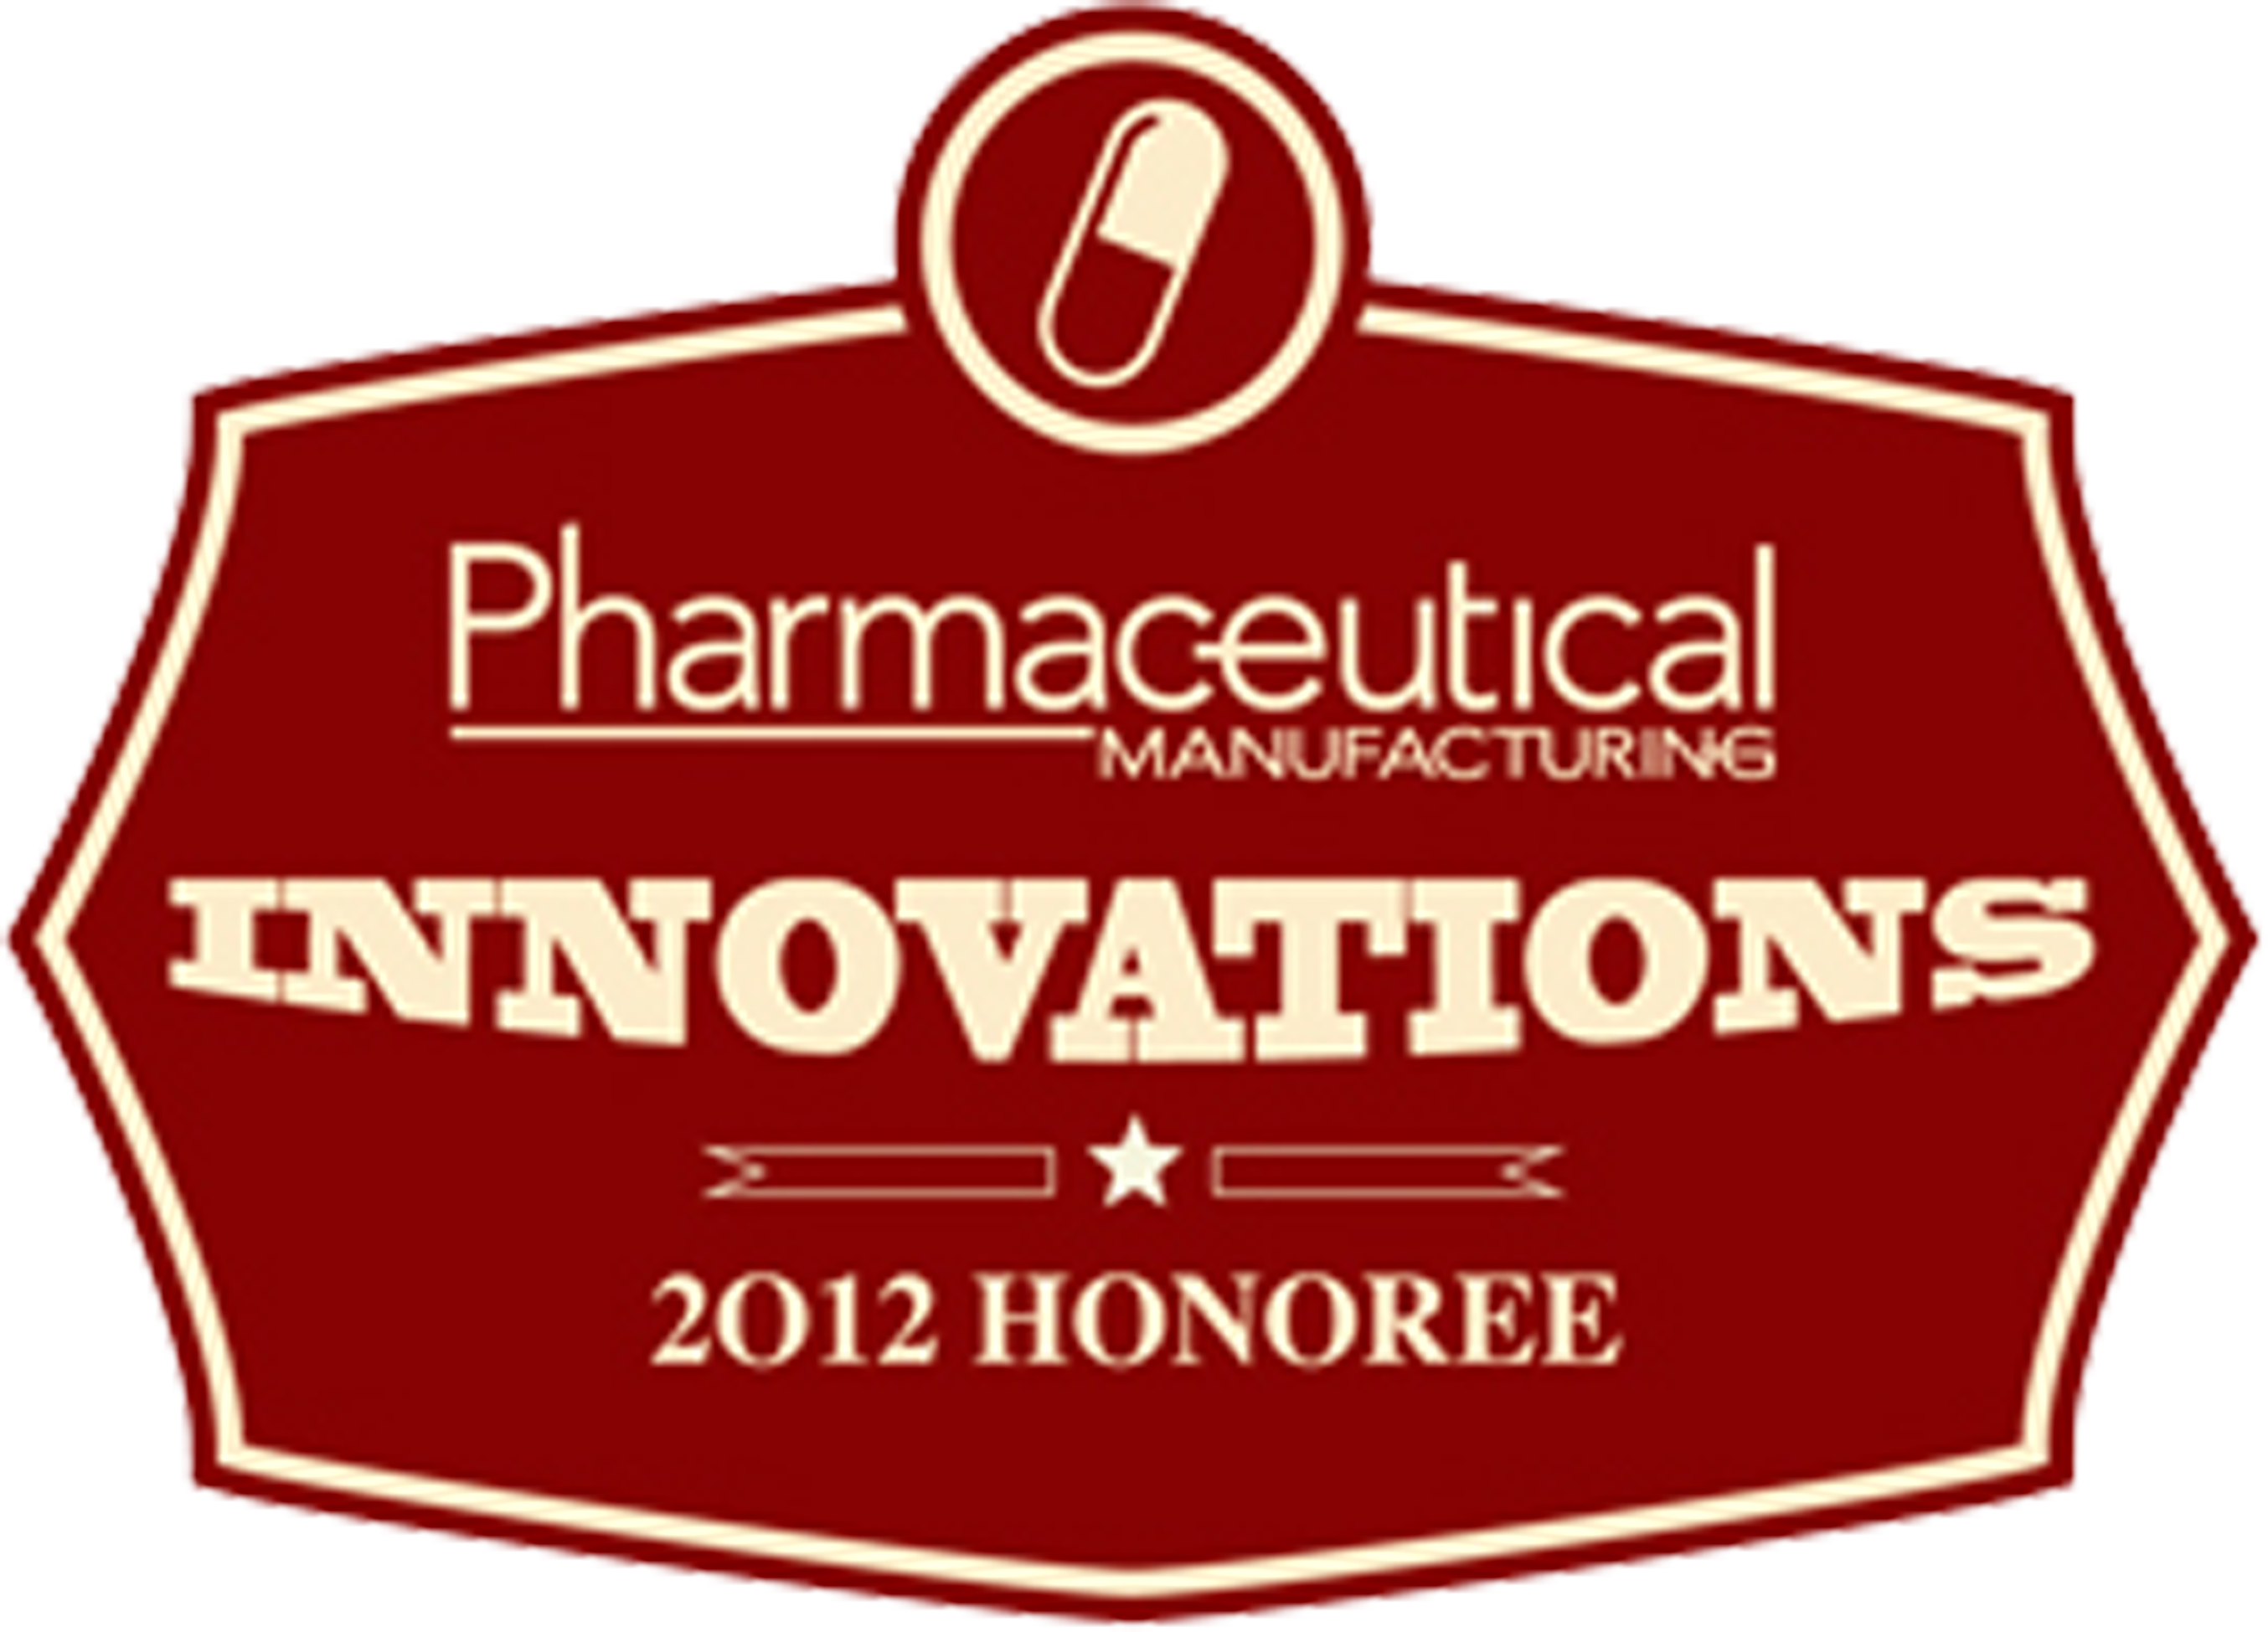 Pharmaceutical Manufacturing Innovations 2012 Honoree